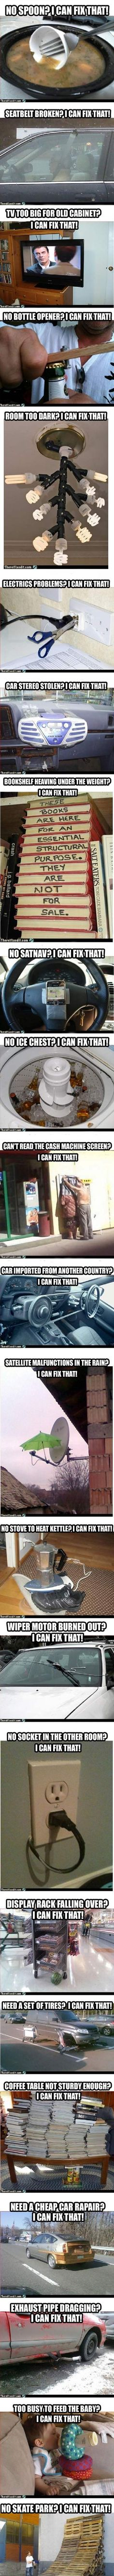 I died laughing! this is so redneck!!!  Omg c'est trop enorme